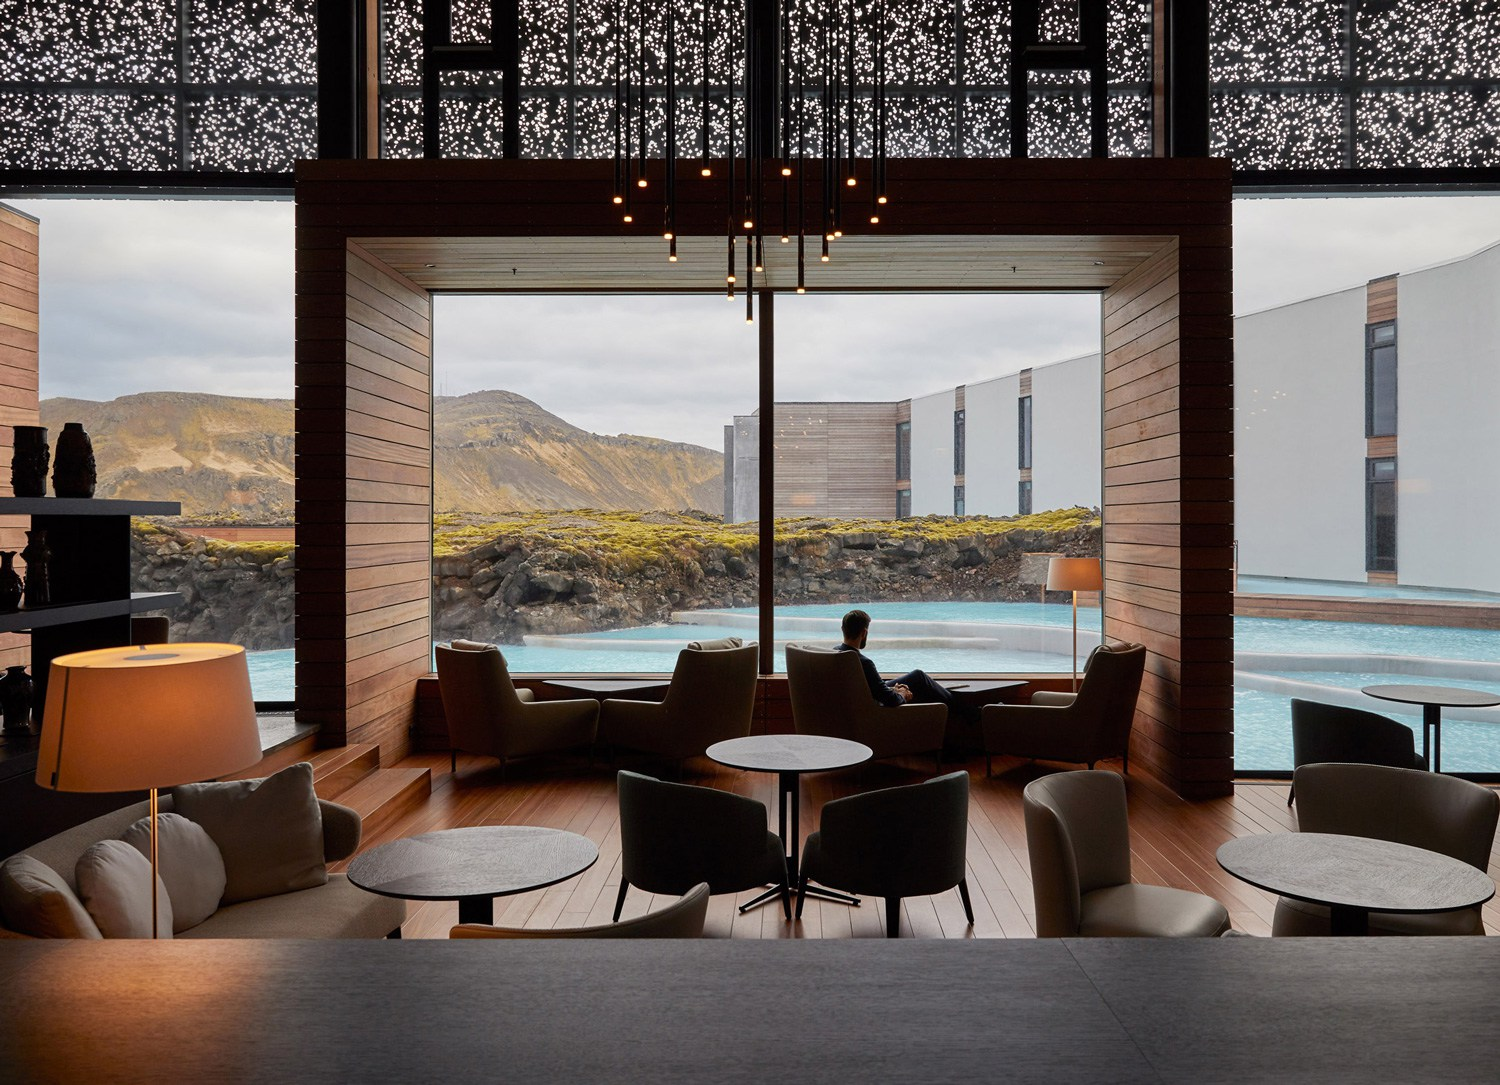 The-Retreat-Hotel-at-Blue-Lagoon-in-Grindavik-Iceland-Yellowtrace-01